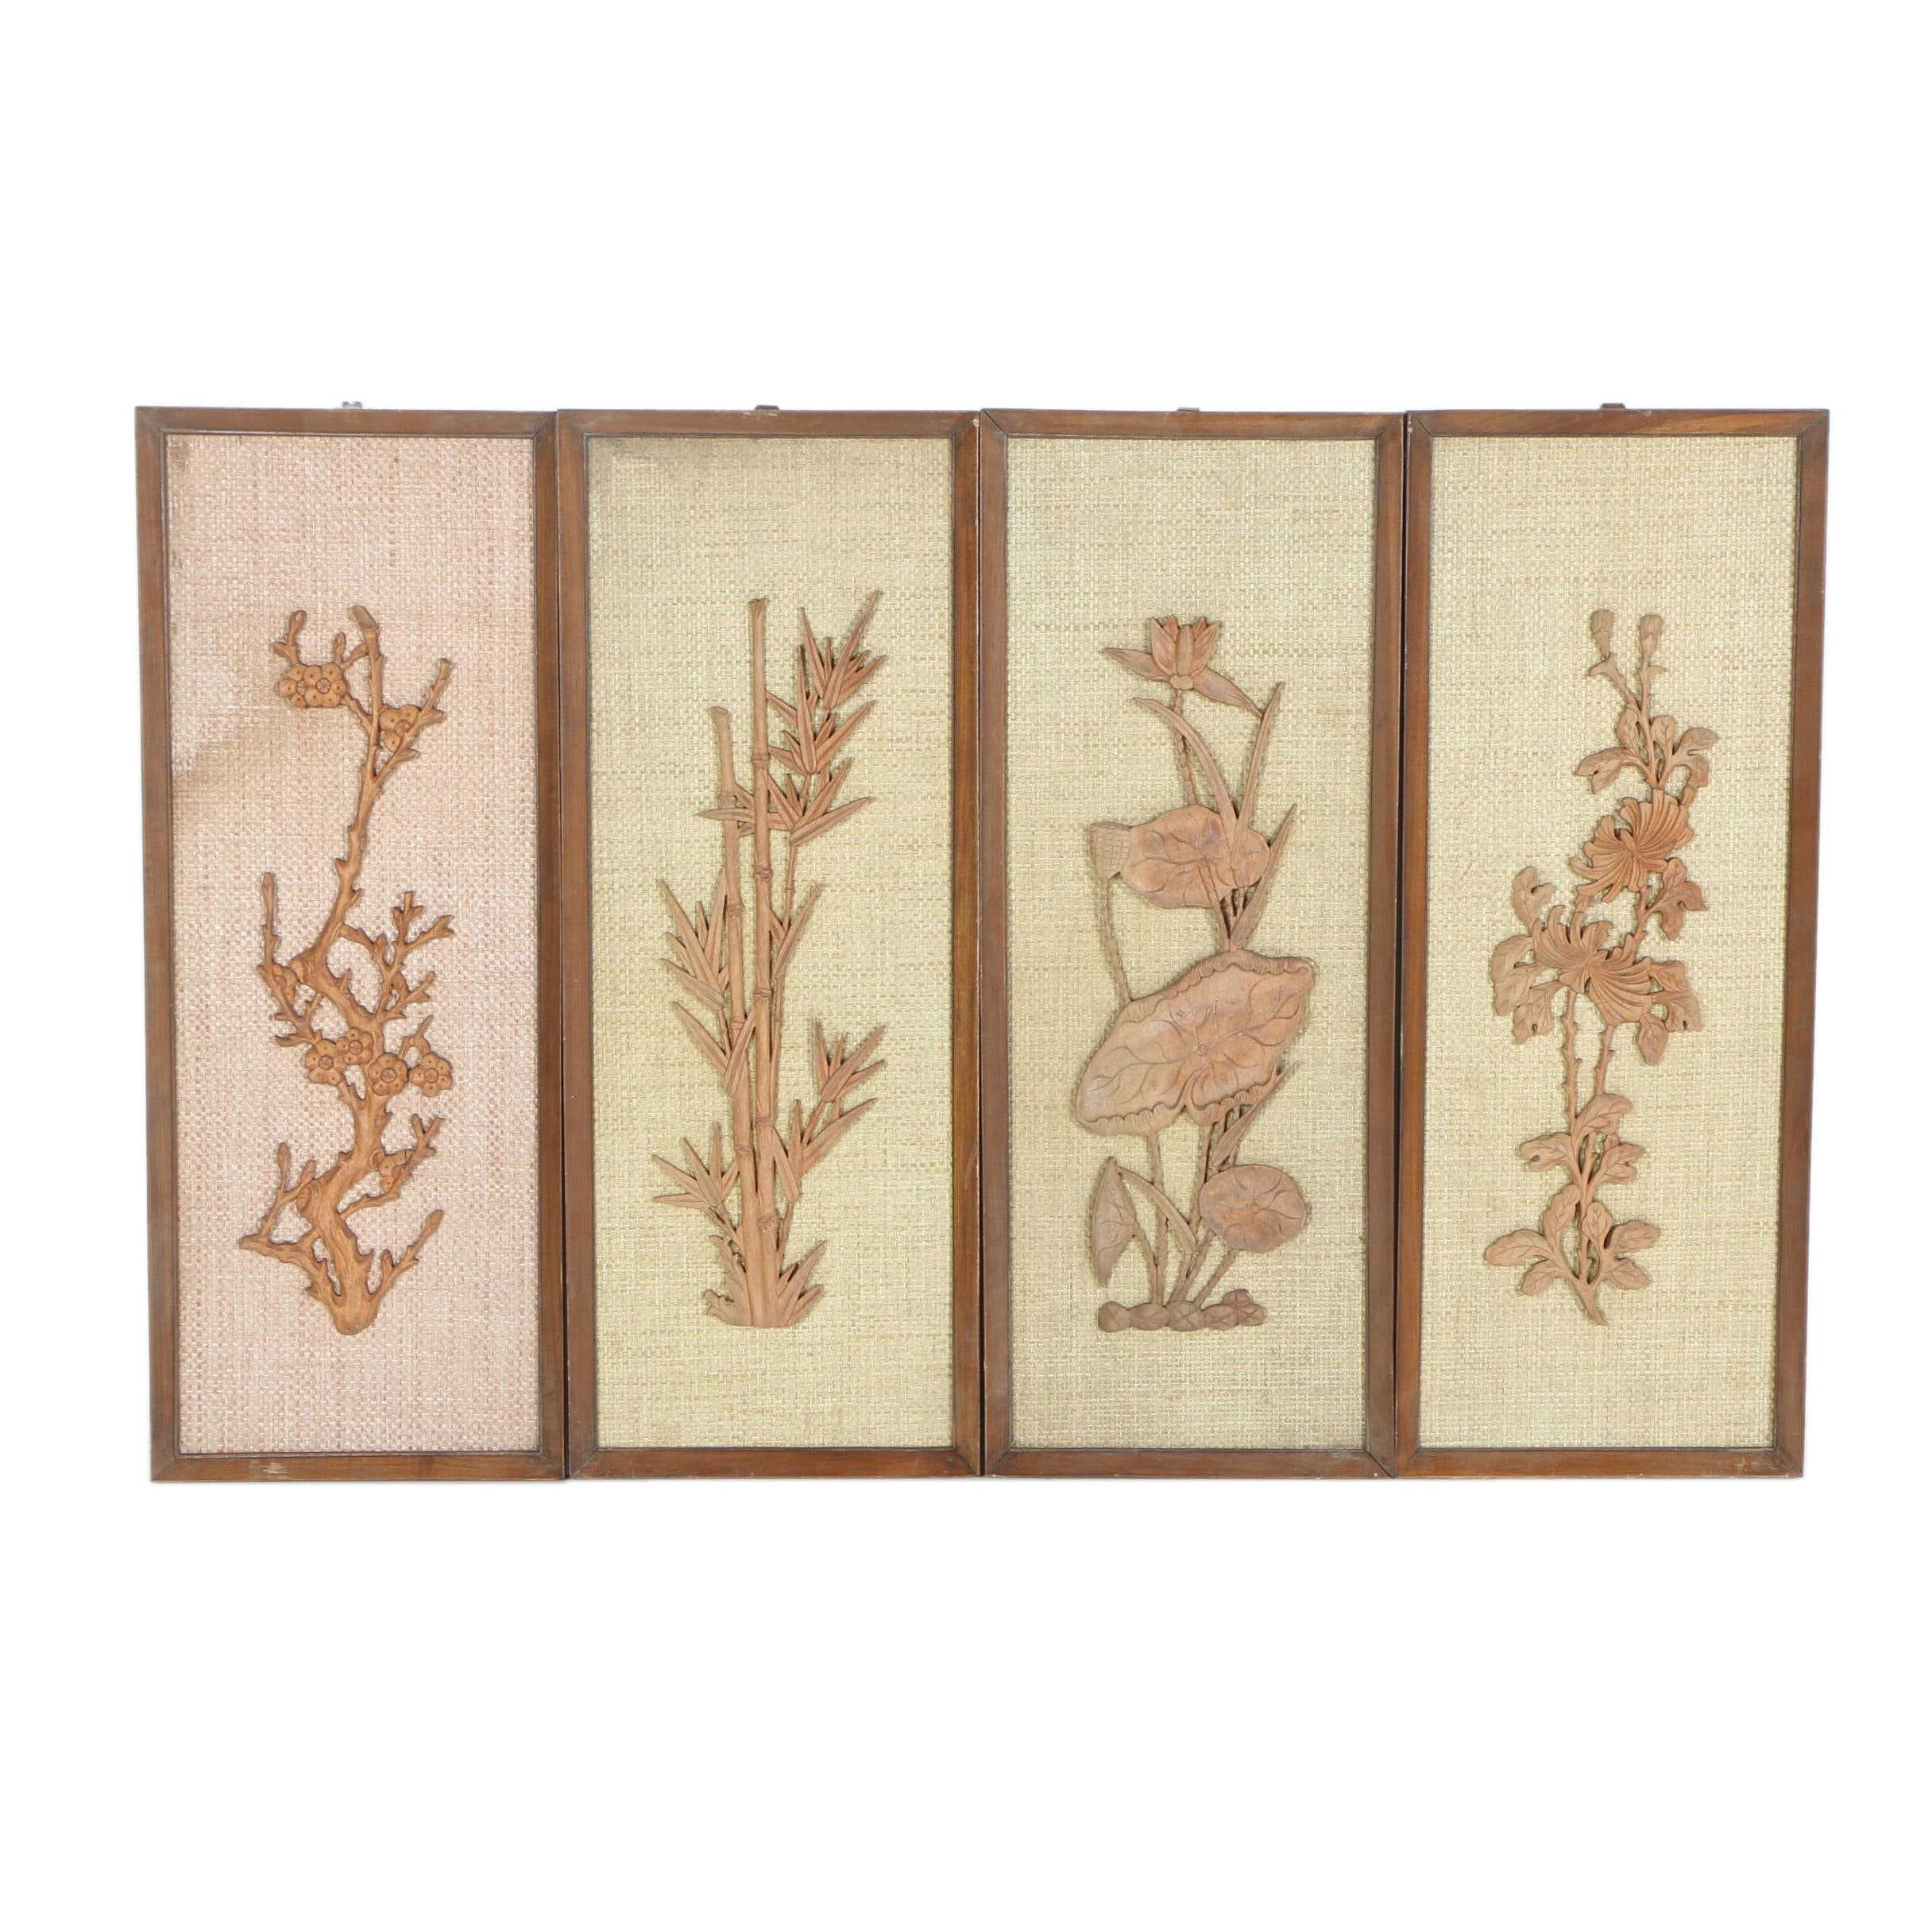 Wood Panels with Carved Floral Design